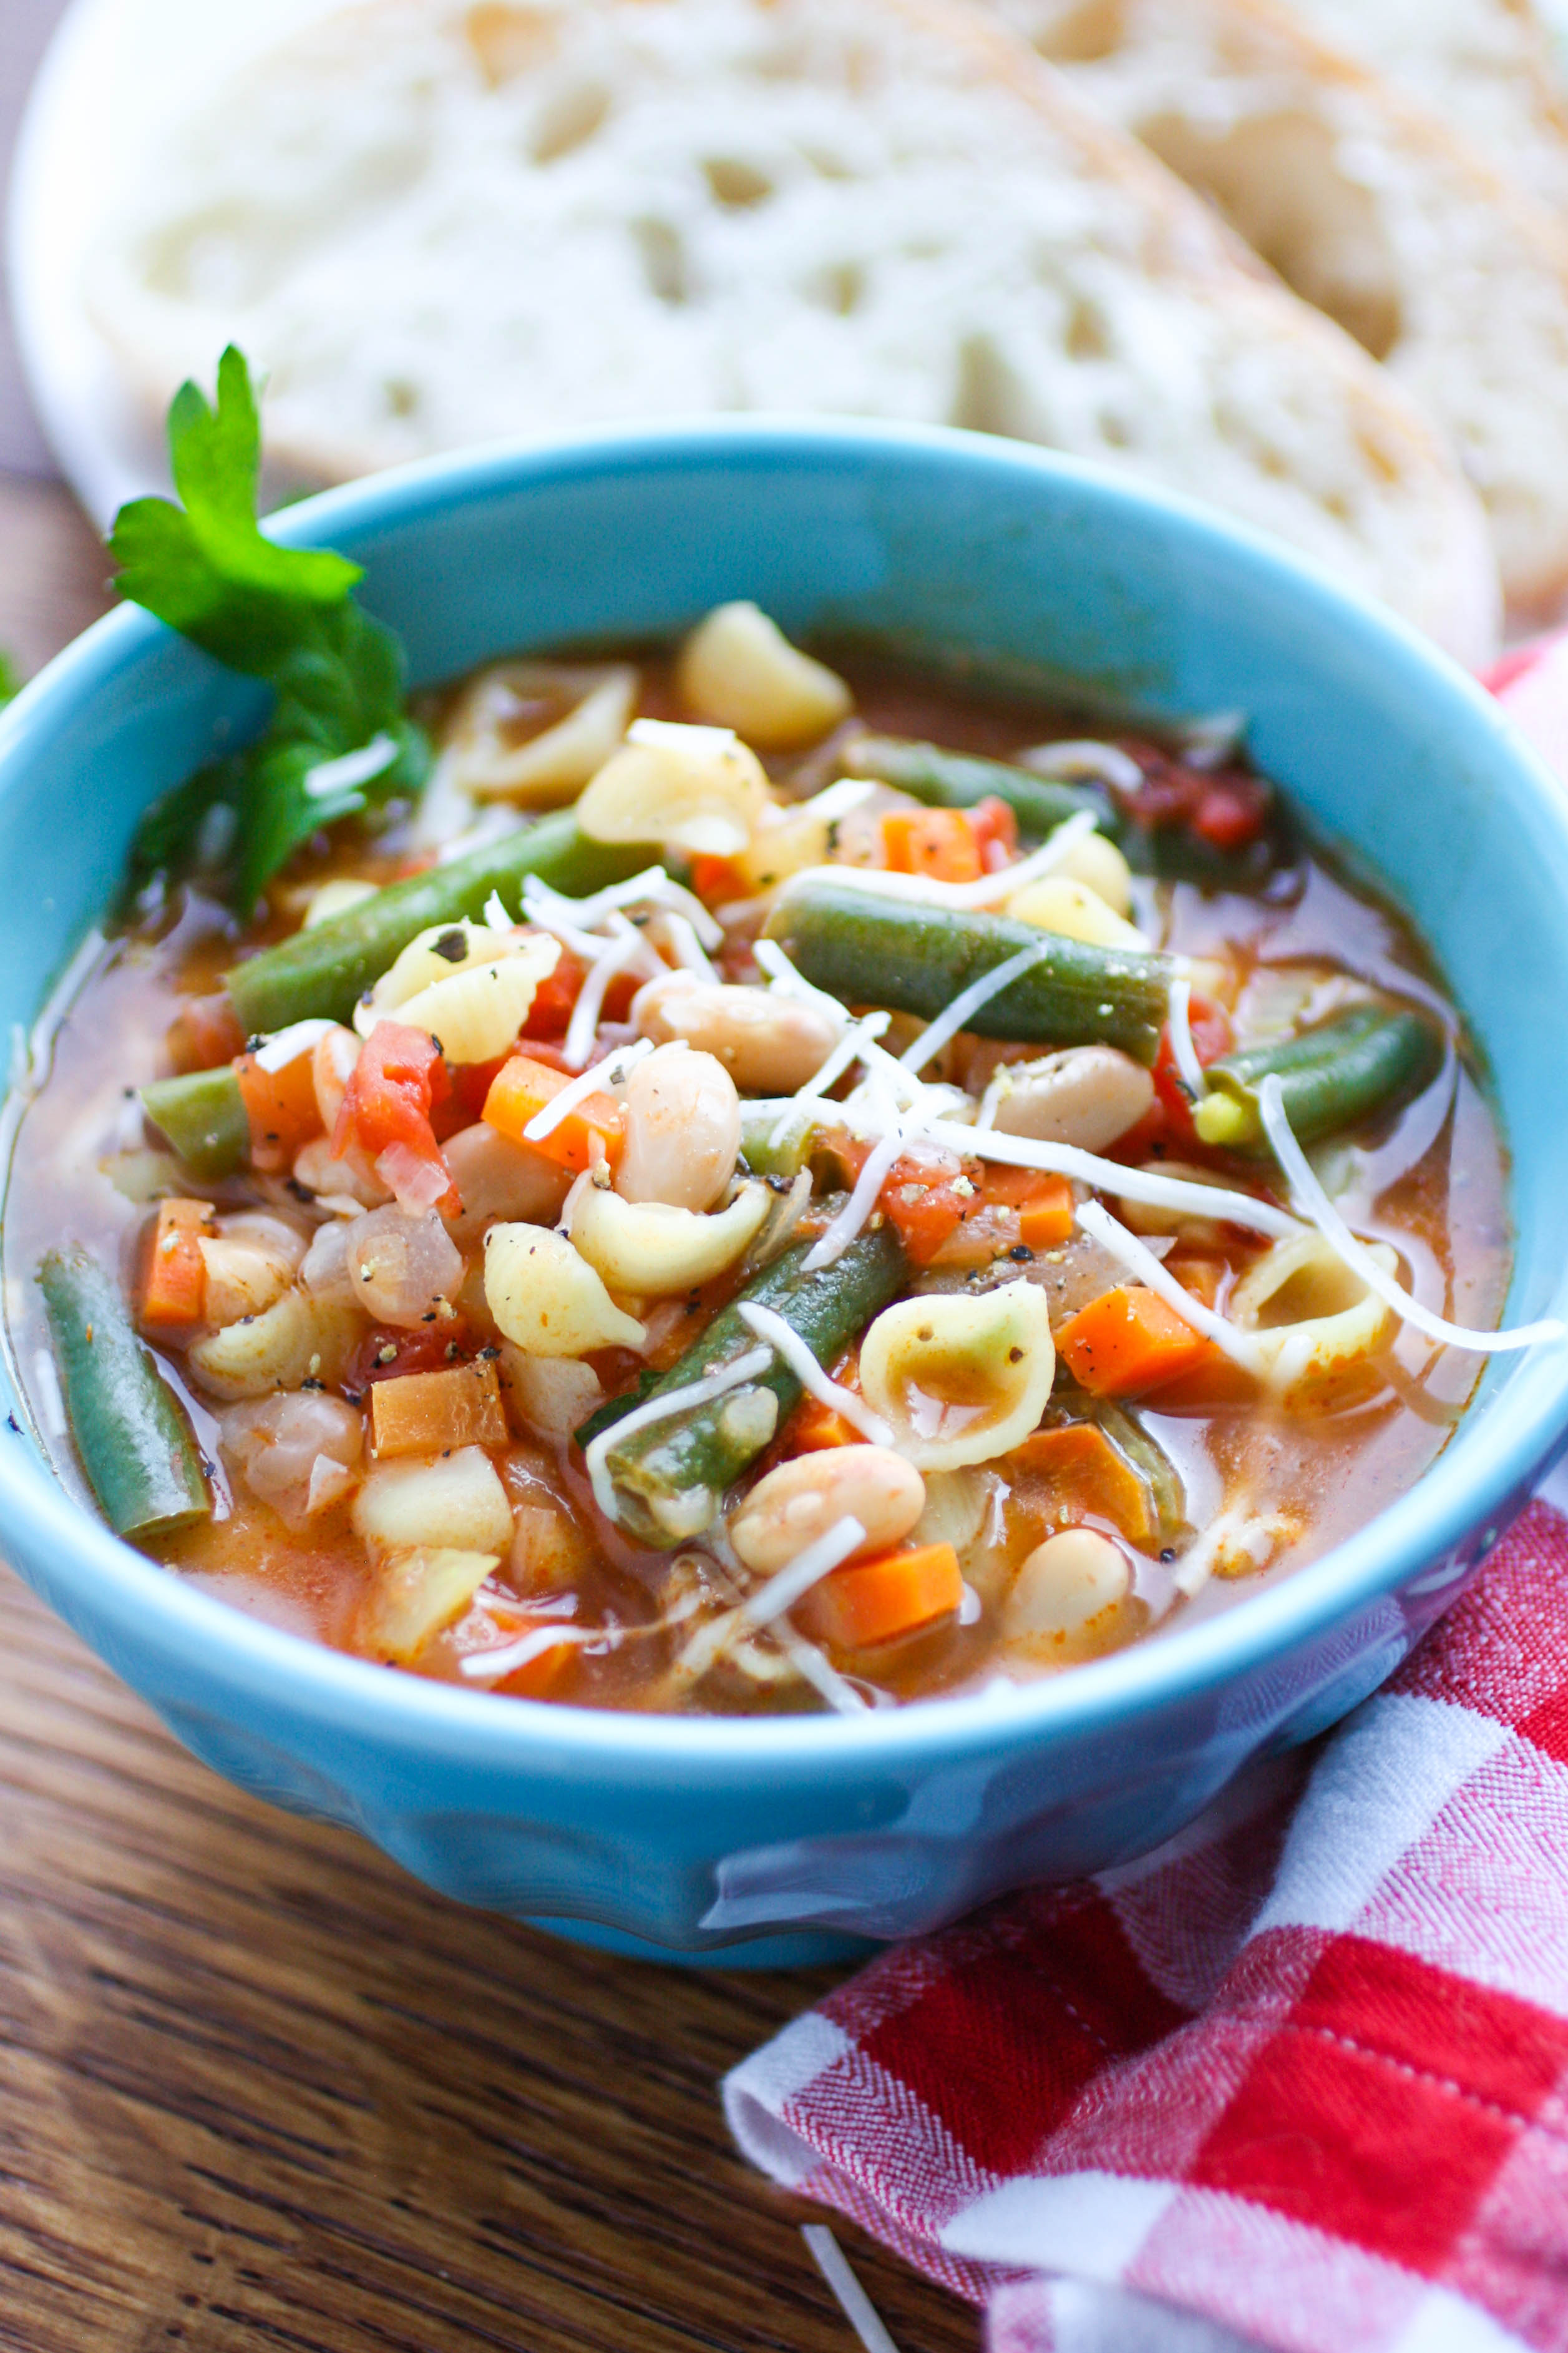 Minestrone soup is super filling and delicious. You'll love minestrone soup when you want a filling and flavorful dish.